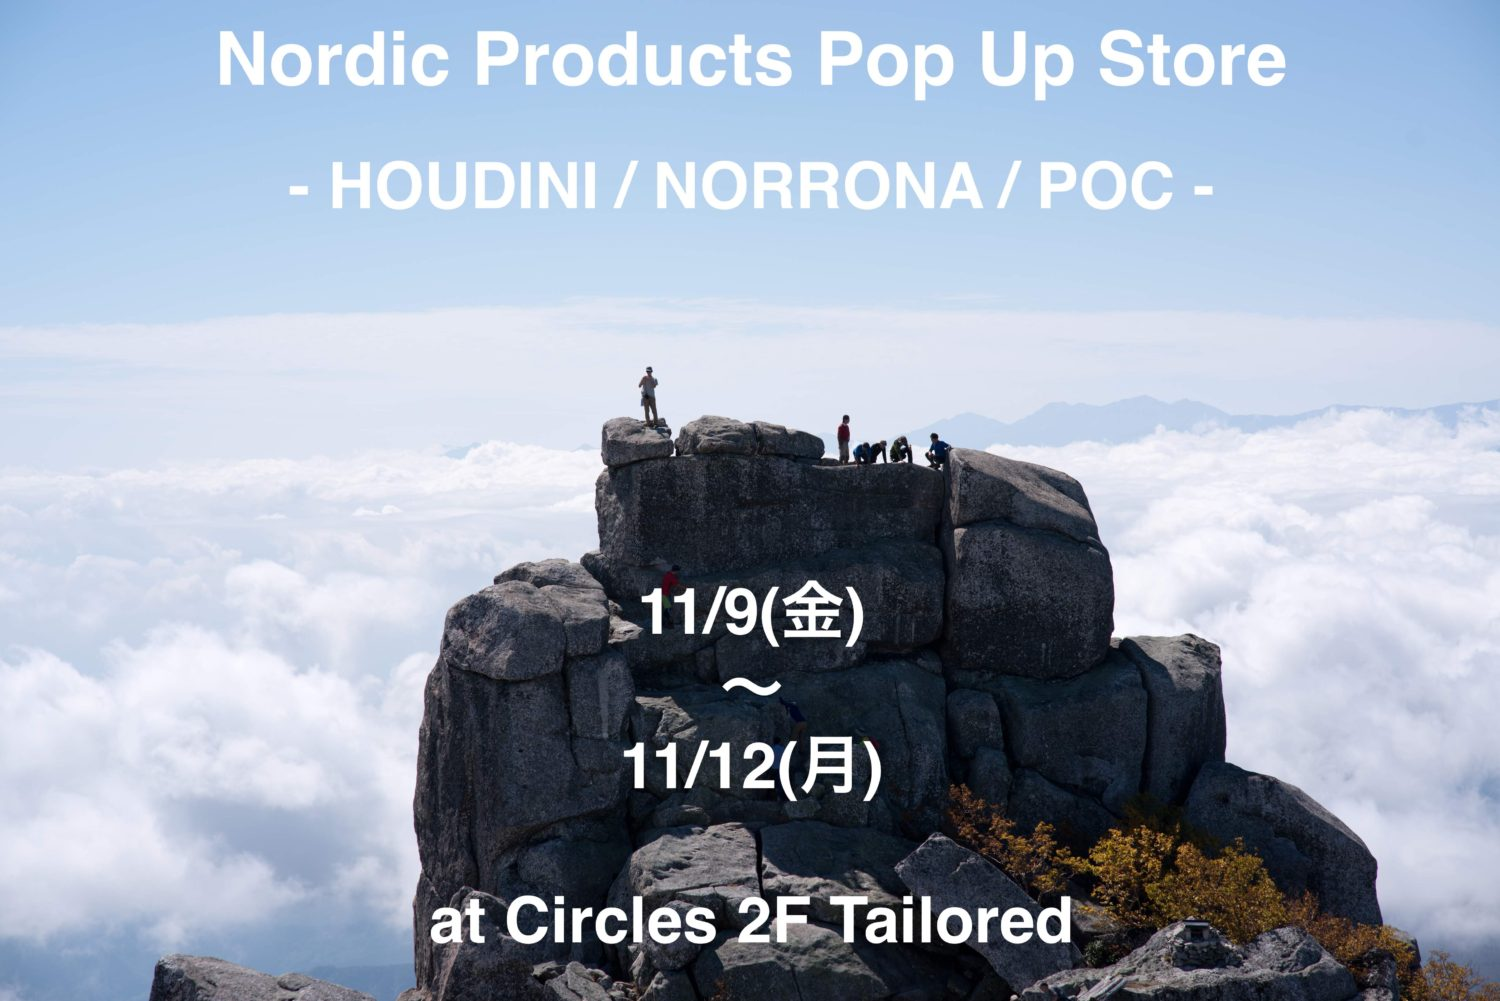 Nordic Products Pop Up Store